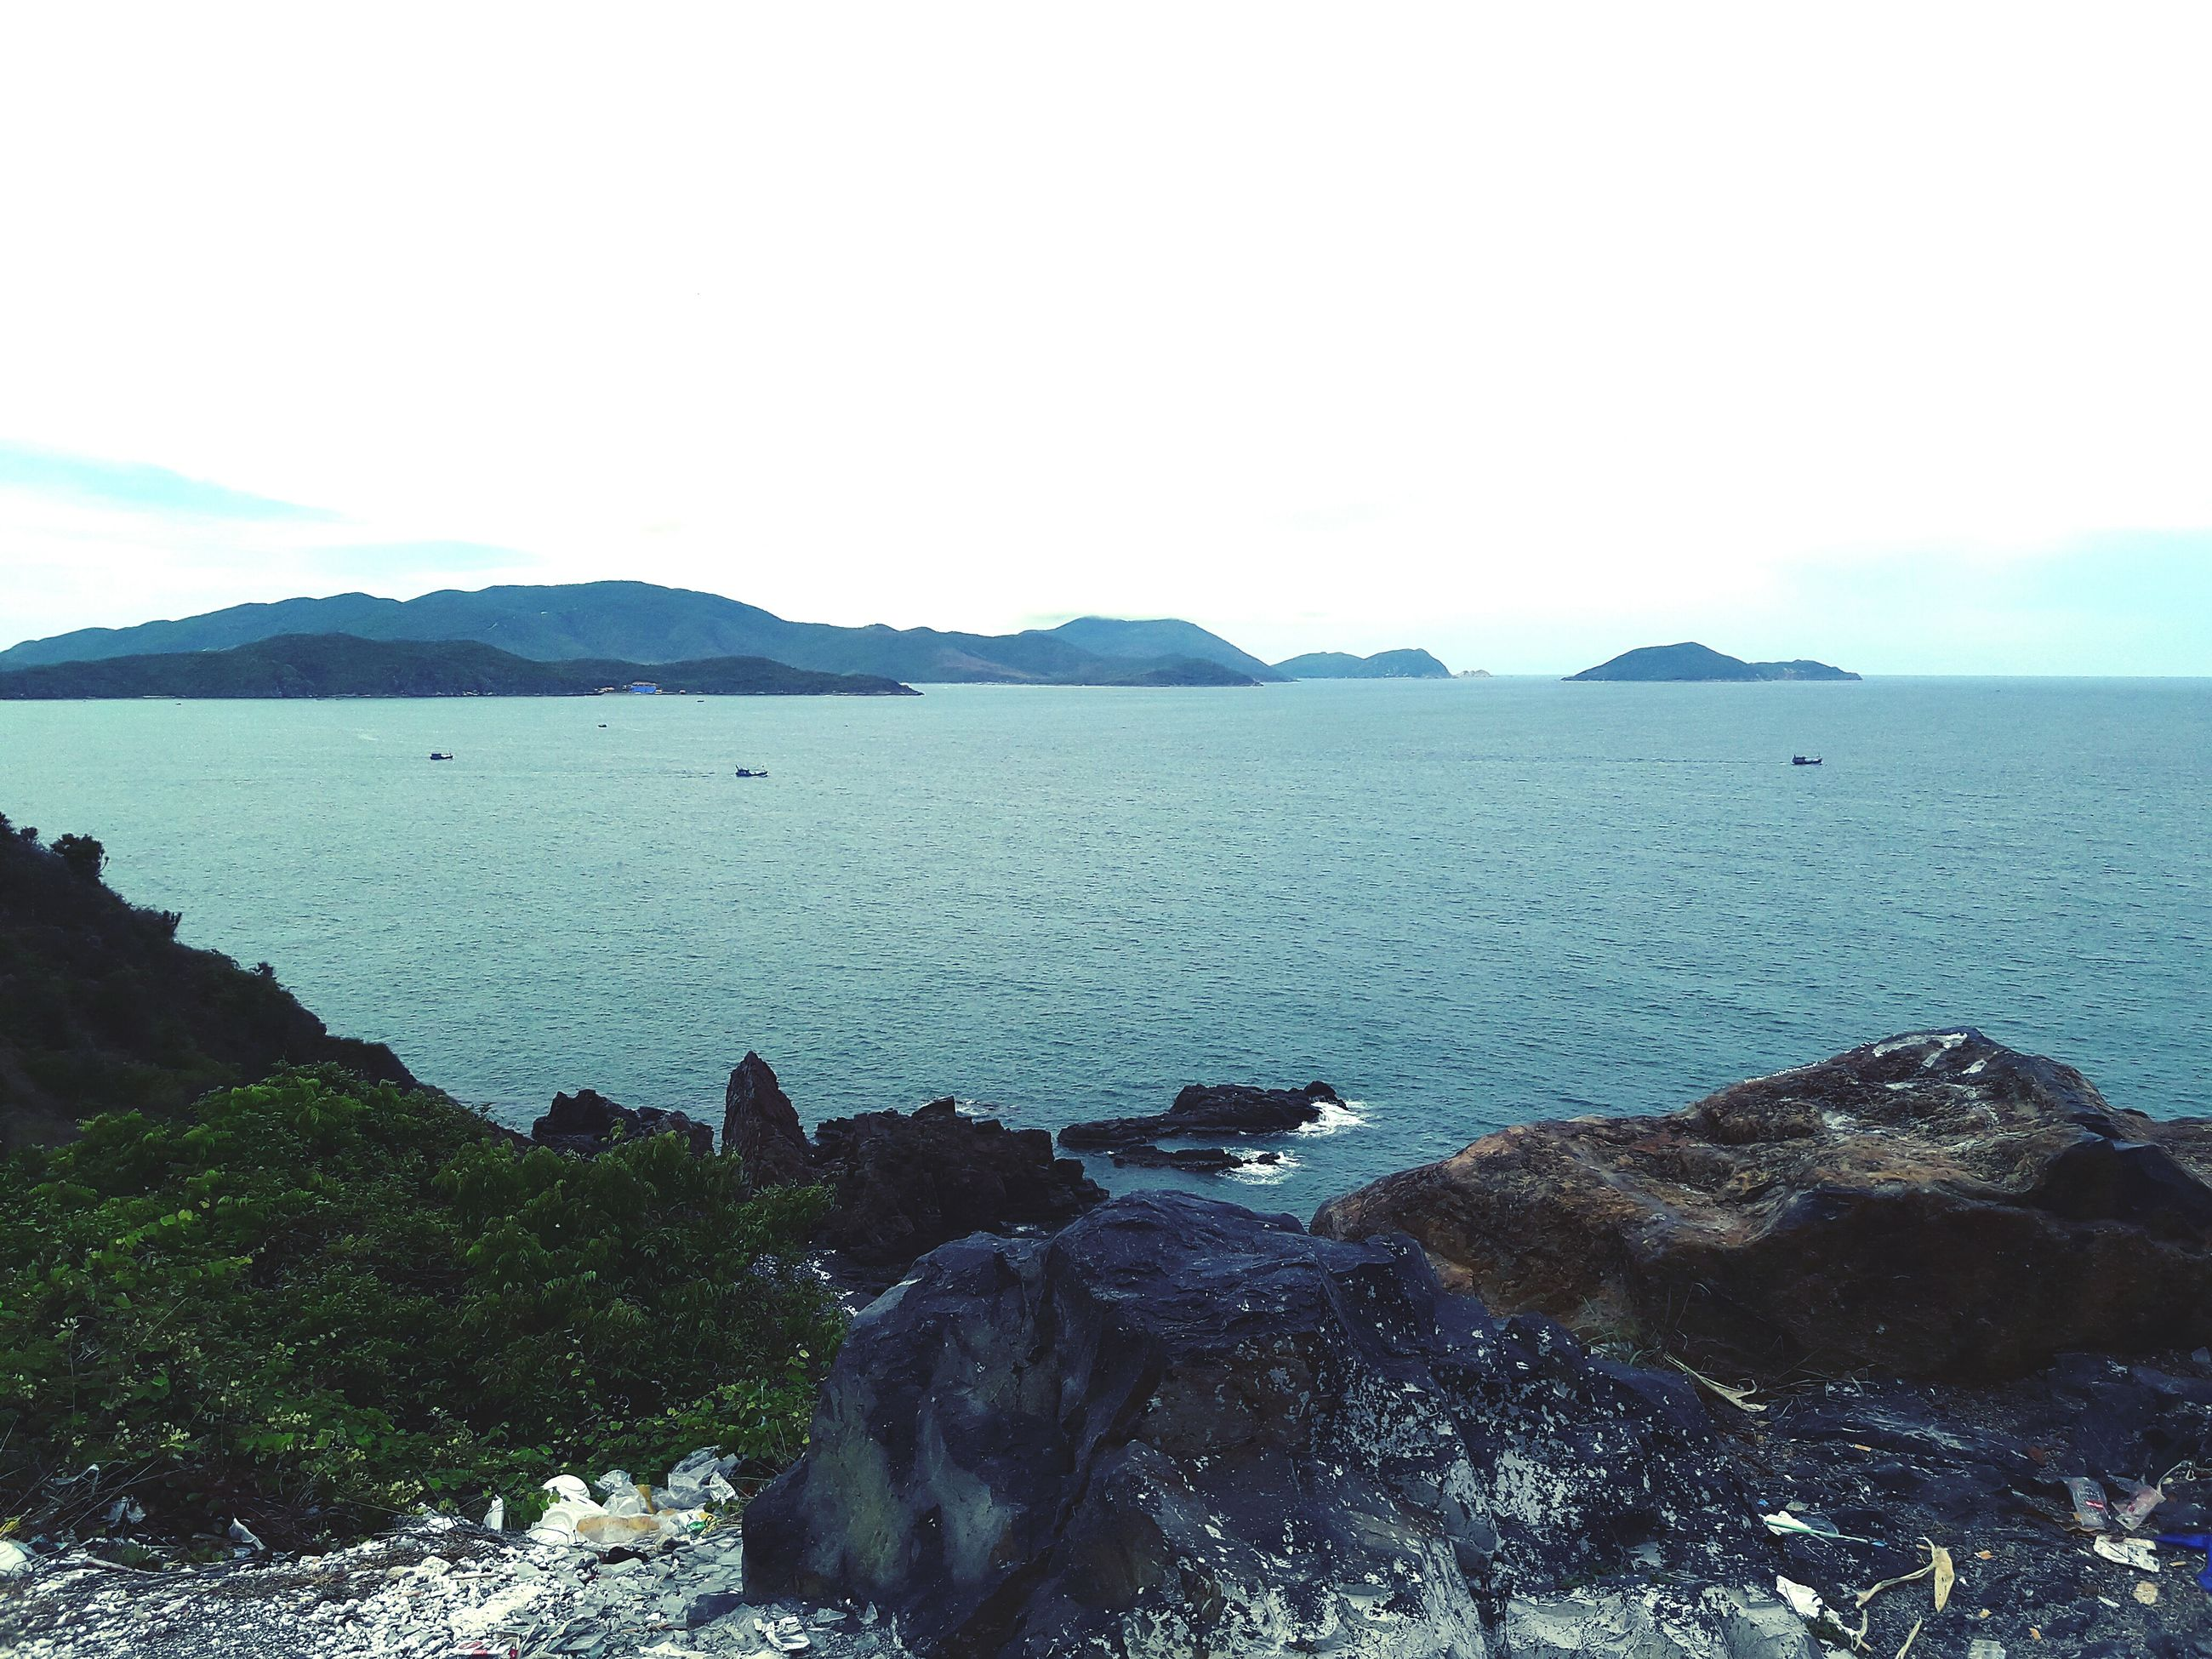 water, mountain, scenics, tranquil scene, tranquility, beauty in nature, sea, clear sky, nature, rock - object, copy space, mountain range, idyllic, sky, non-urban scene, remote, outdoors, coastline, day, landscape